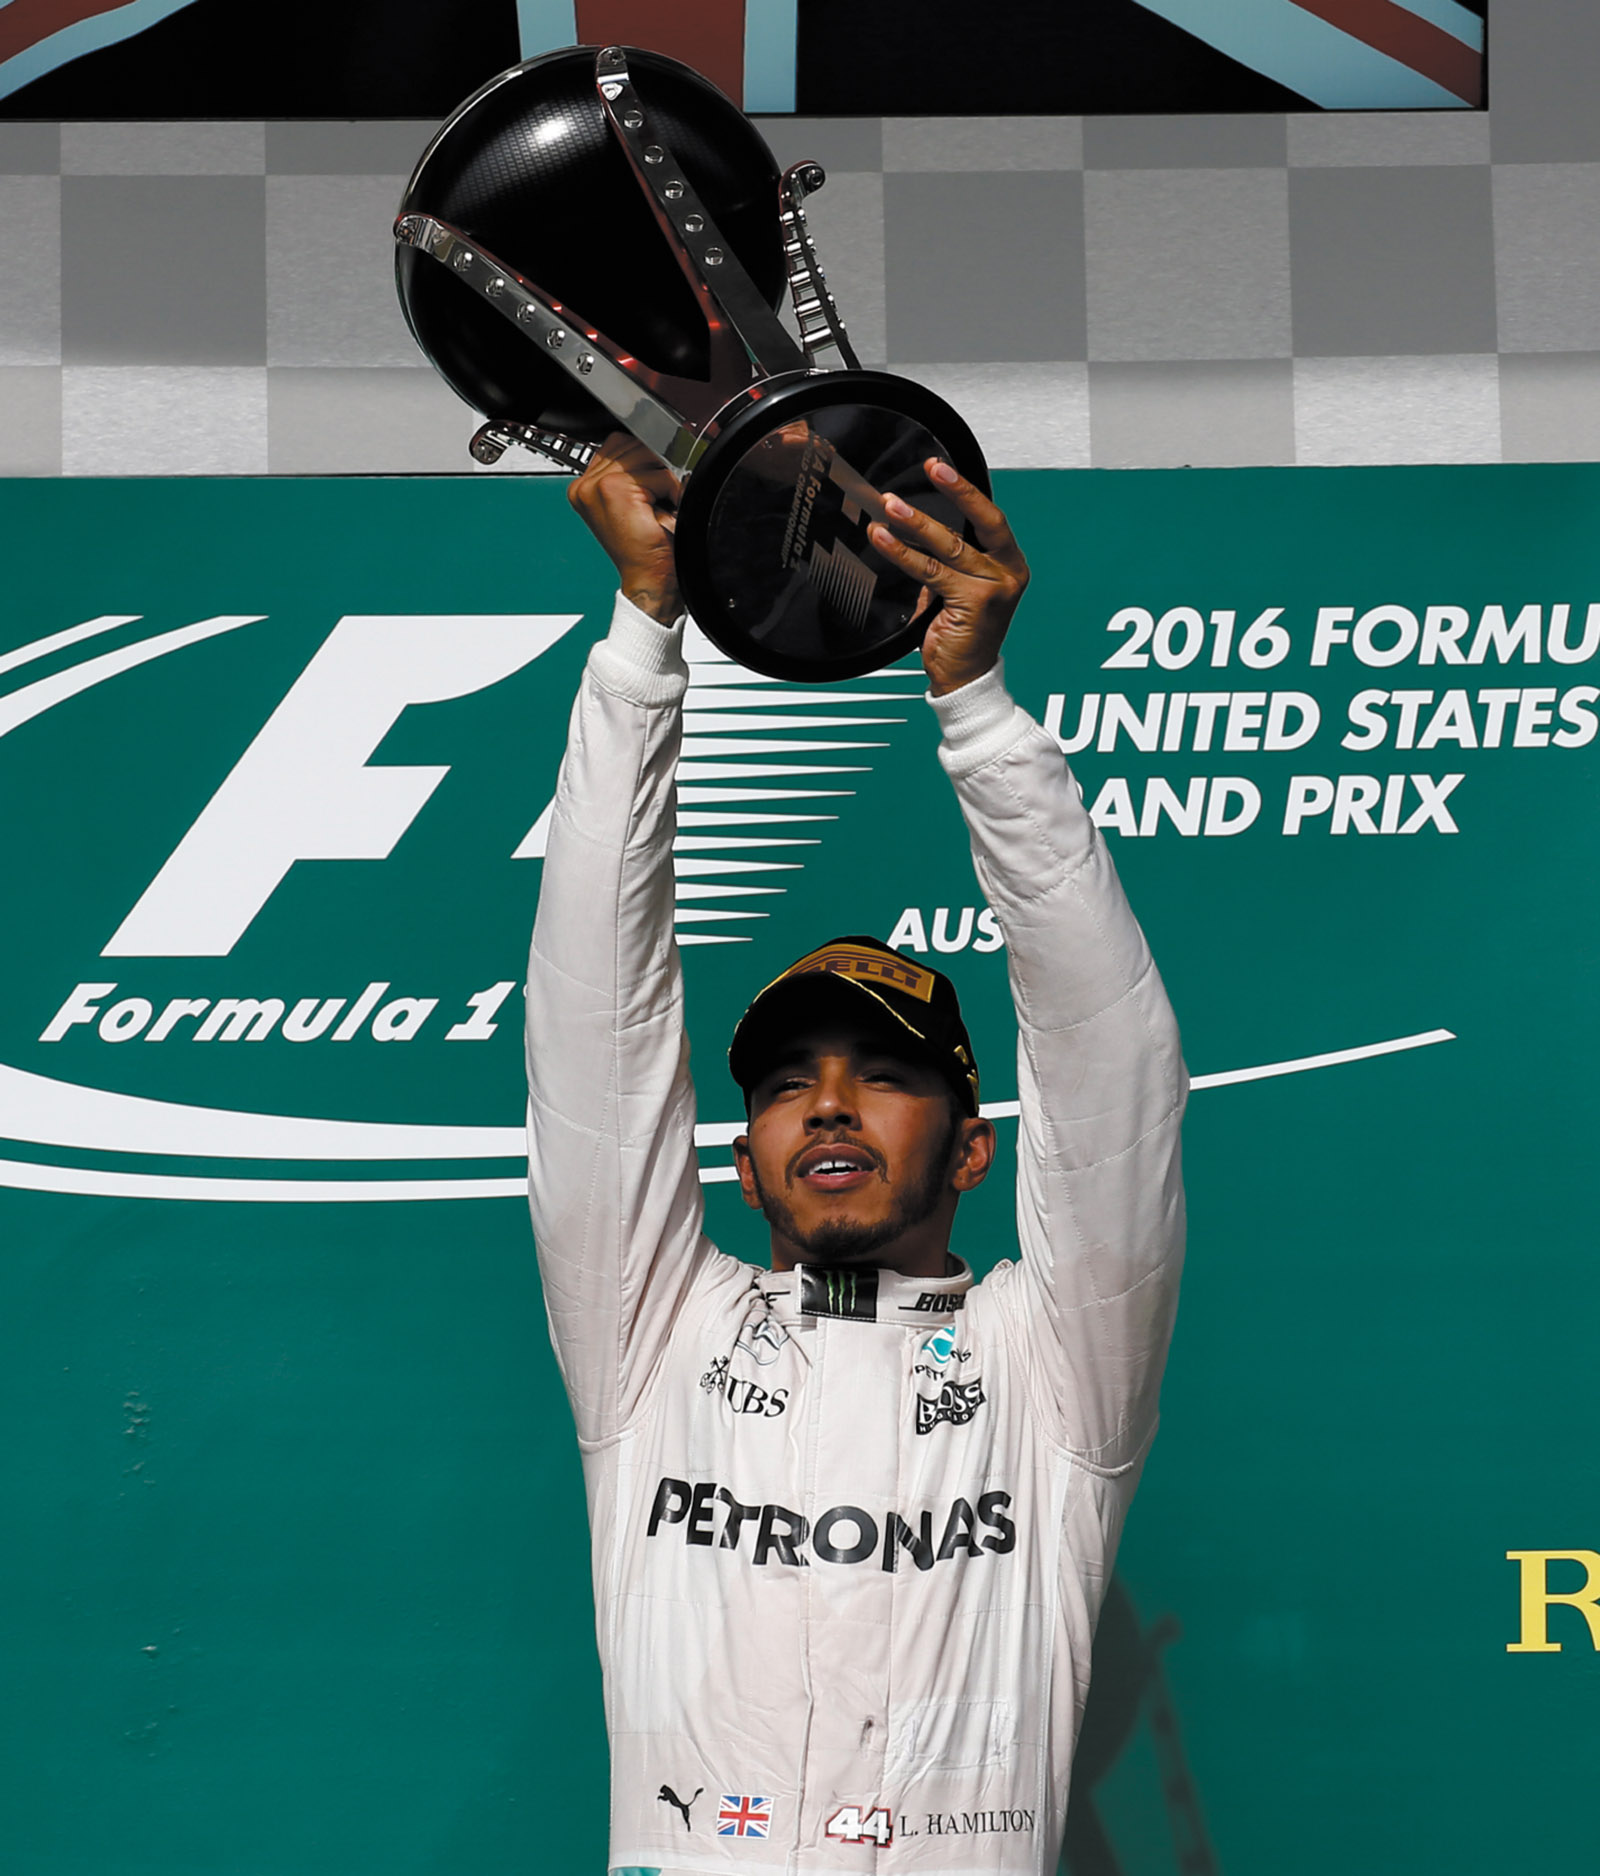 Lewis Hamilton, winner of the USA Formula One Grand Prix at the Circuit of the Americas, Austin, Texas, October 2016